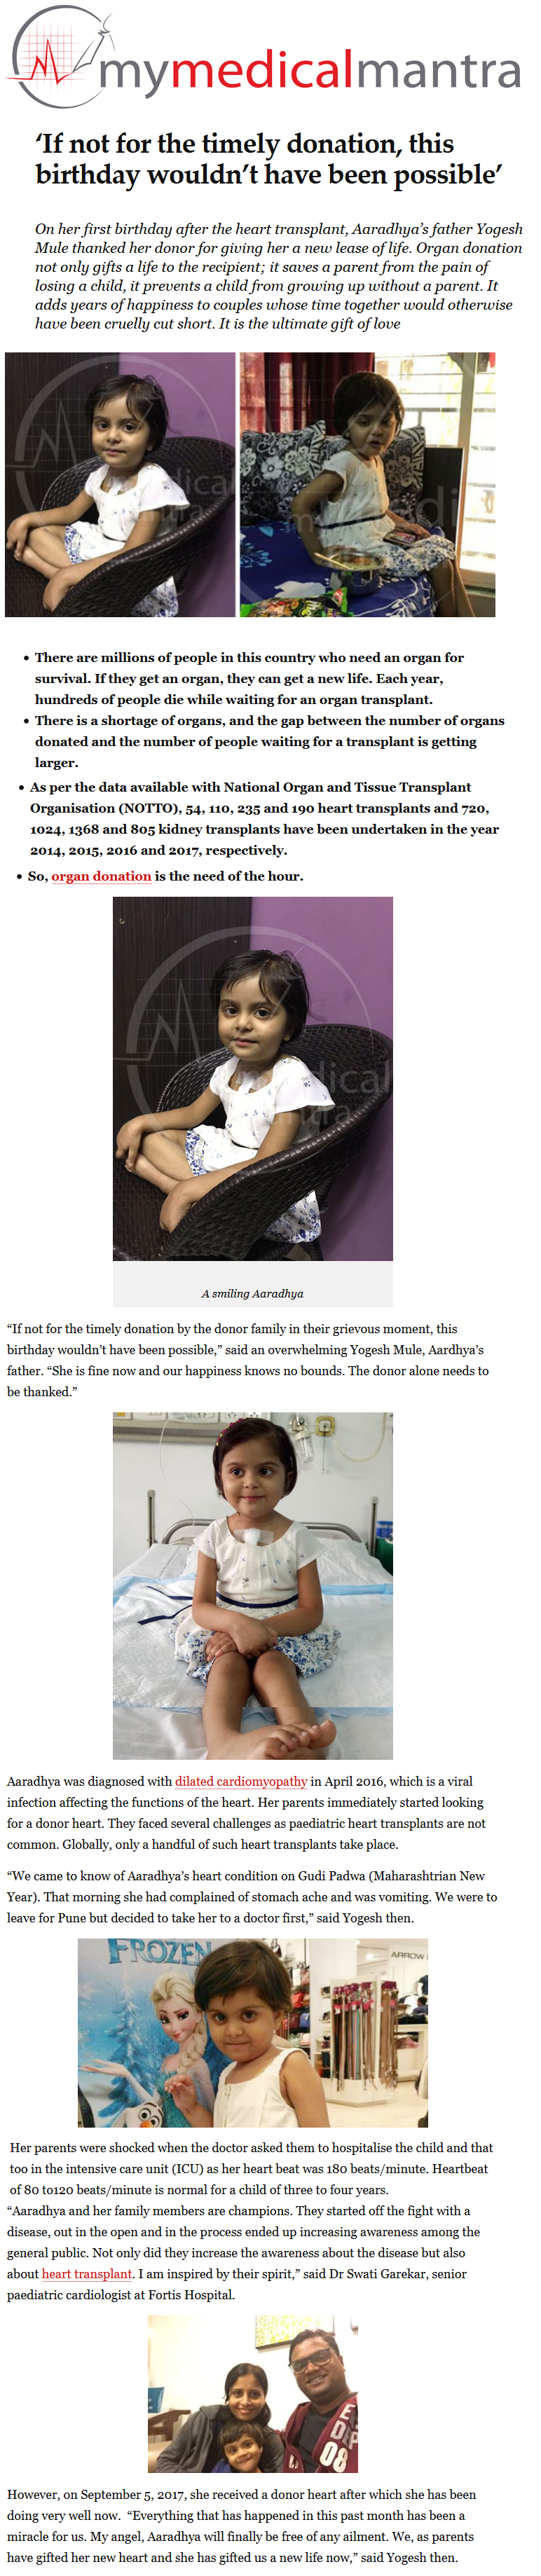 News - If not for the timely donation, this birthday wouldn't have been possible